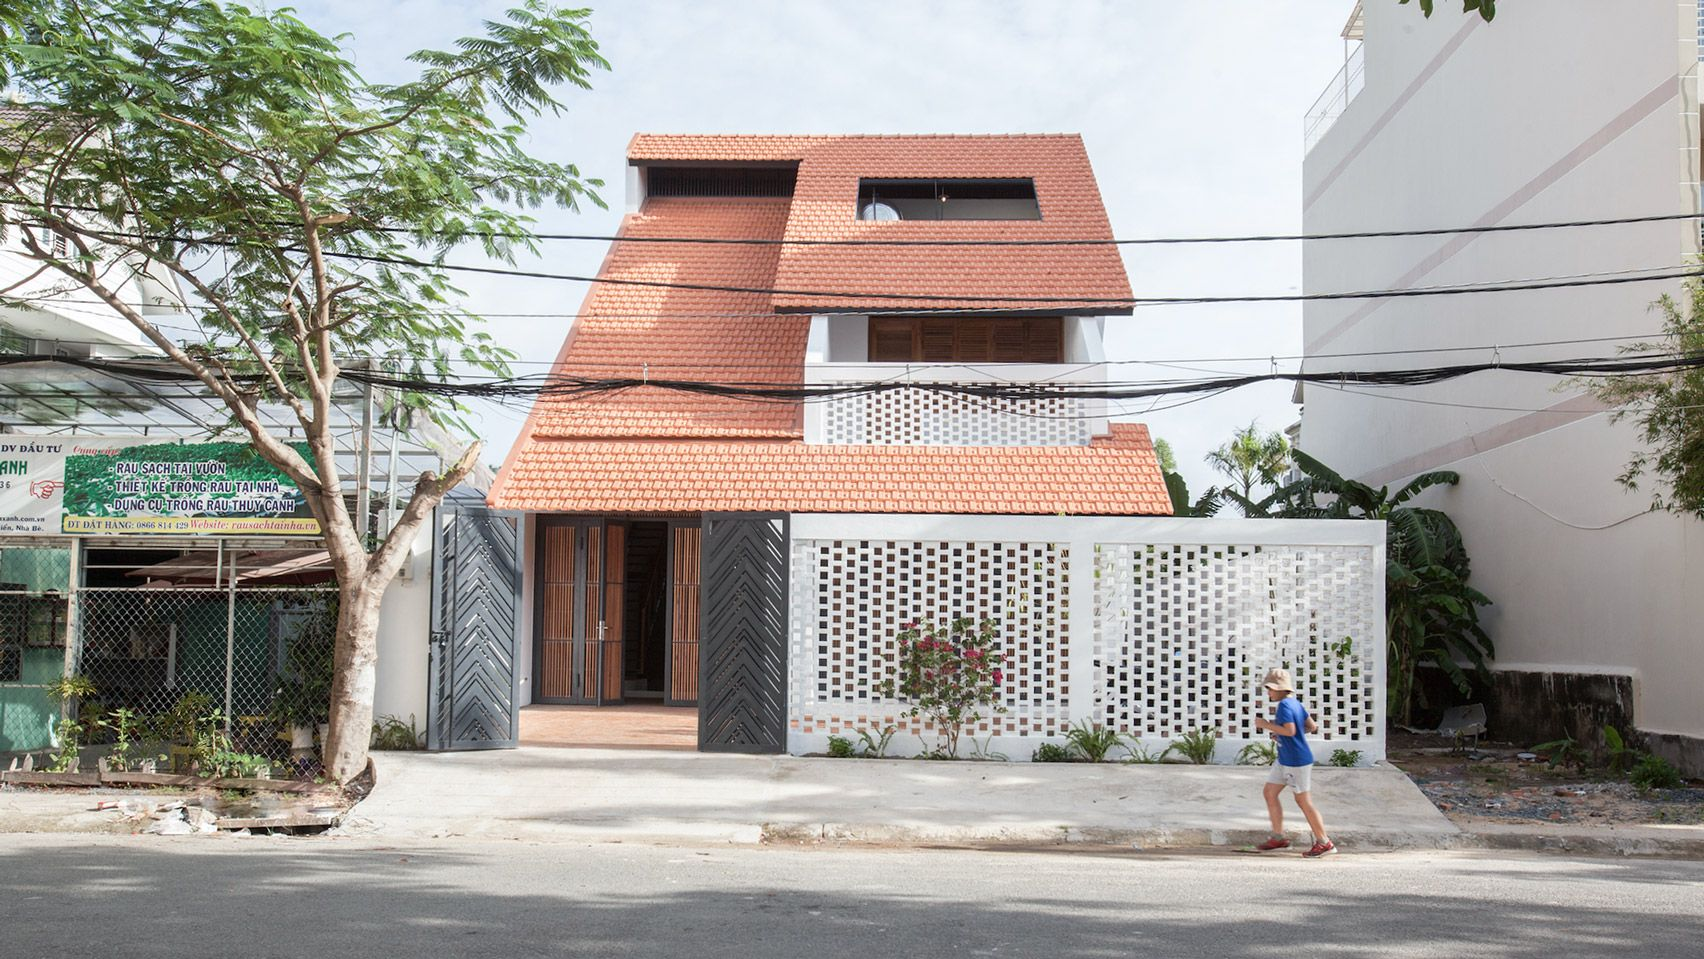 A Giant Terracotta Tile Roof Distinguishes This Home In The Suburbs Of Ho Chi Minh City Which K59 Atelier Has Mode In 2020 House Roof Architecture Architecture House